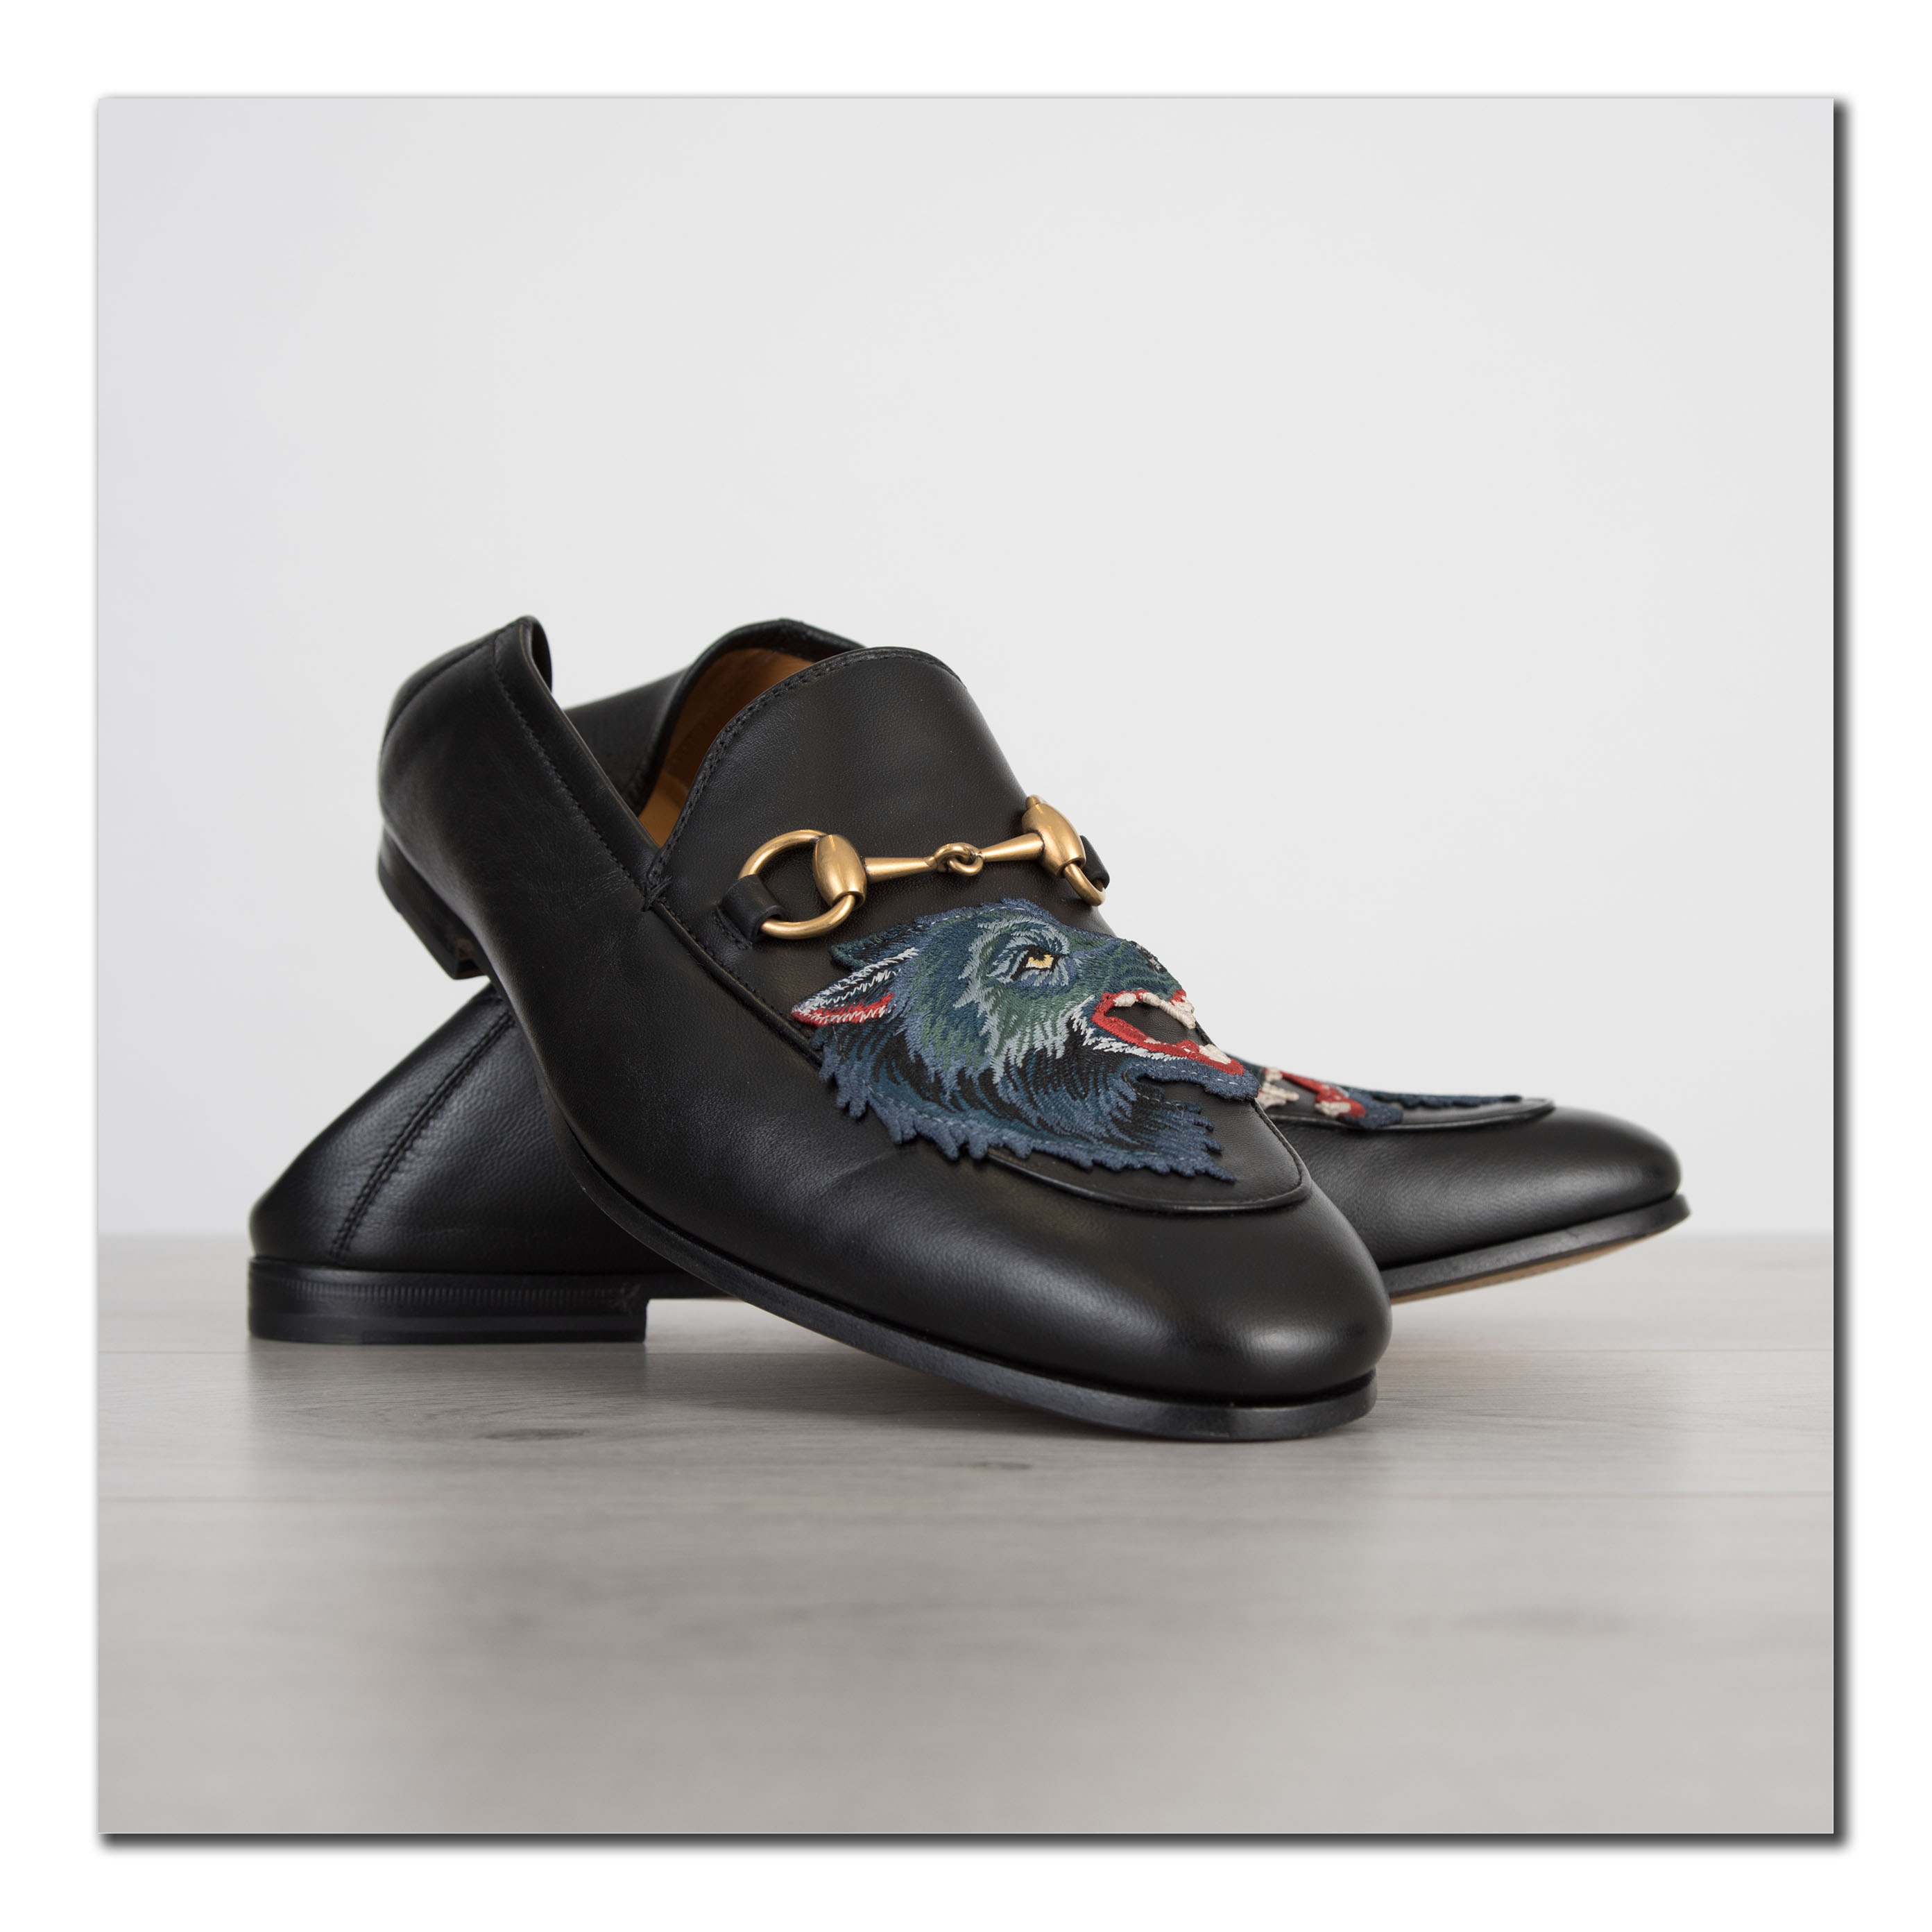 2d94eea1fc4 Details about GUCCI 830  Authentic New Black Leather Loafer With Wolf    Foldable Hele